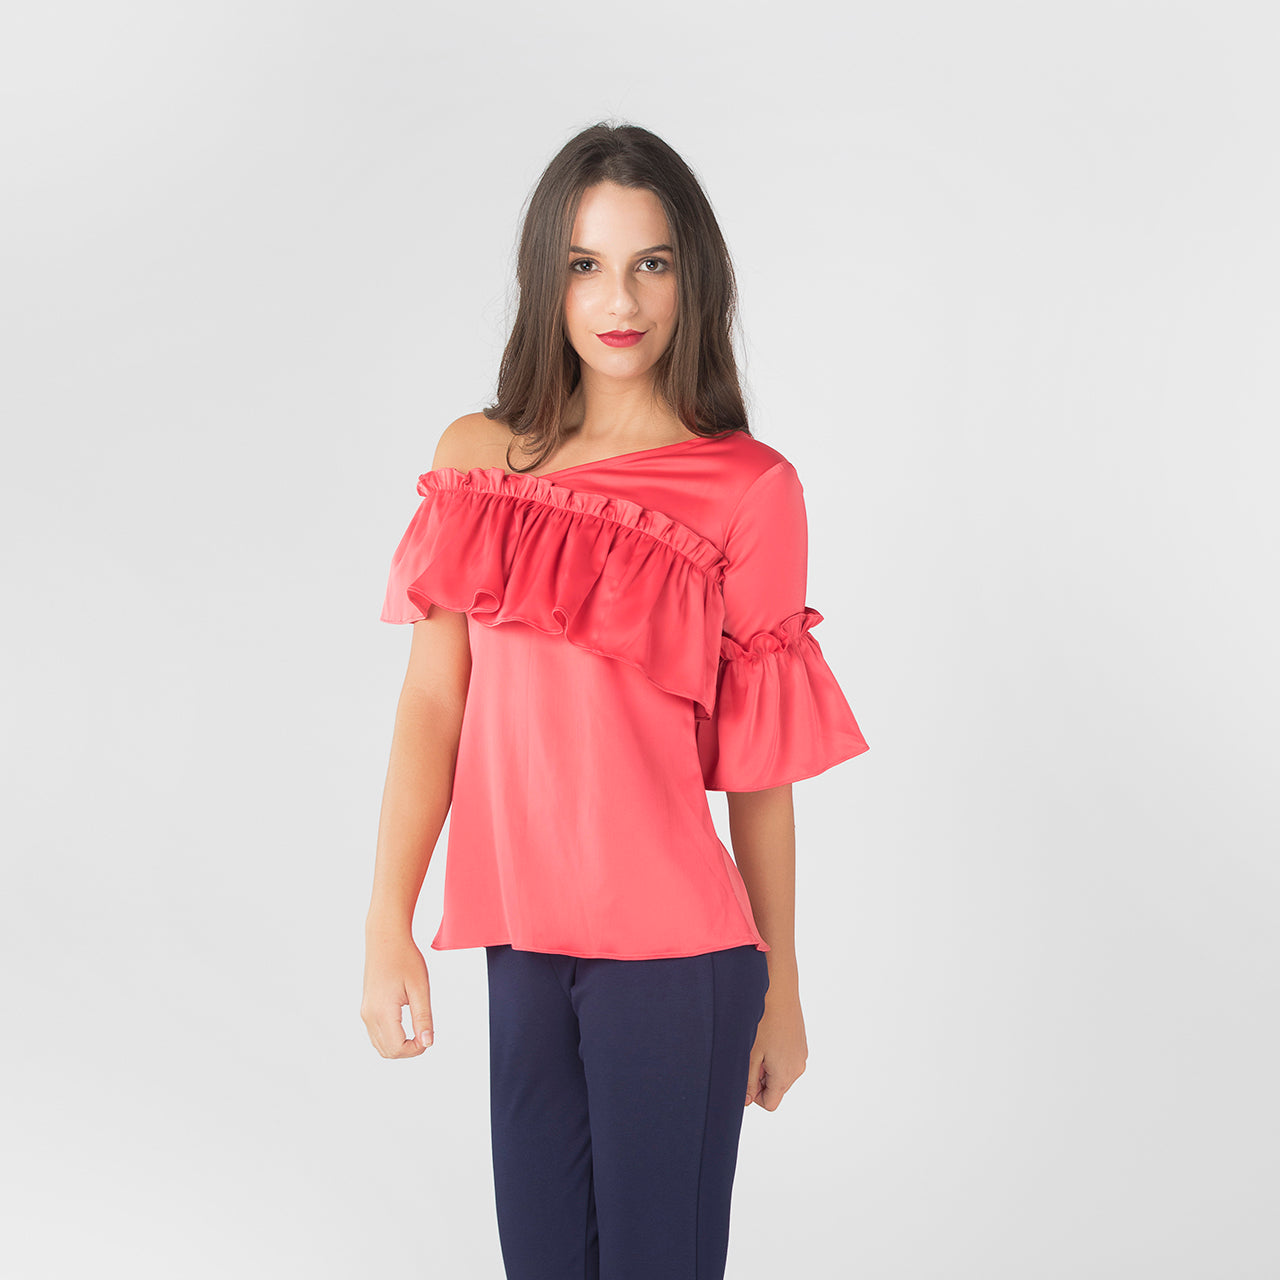 PINK CHARM TOP